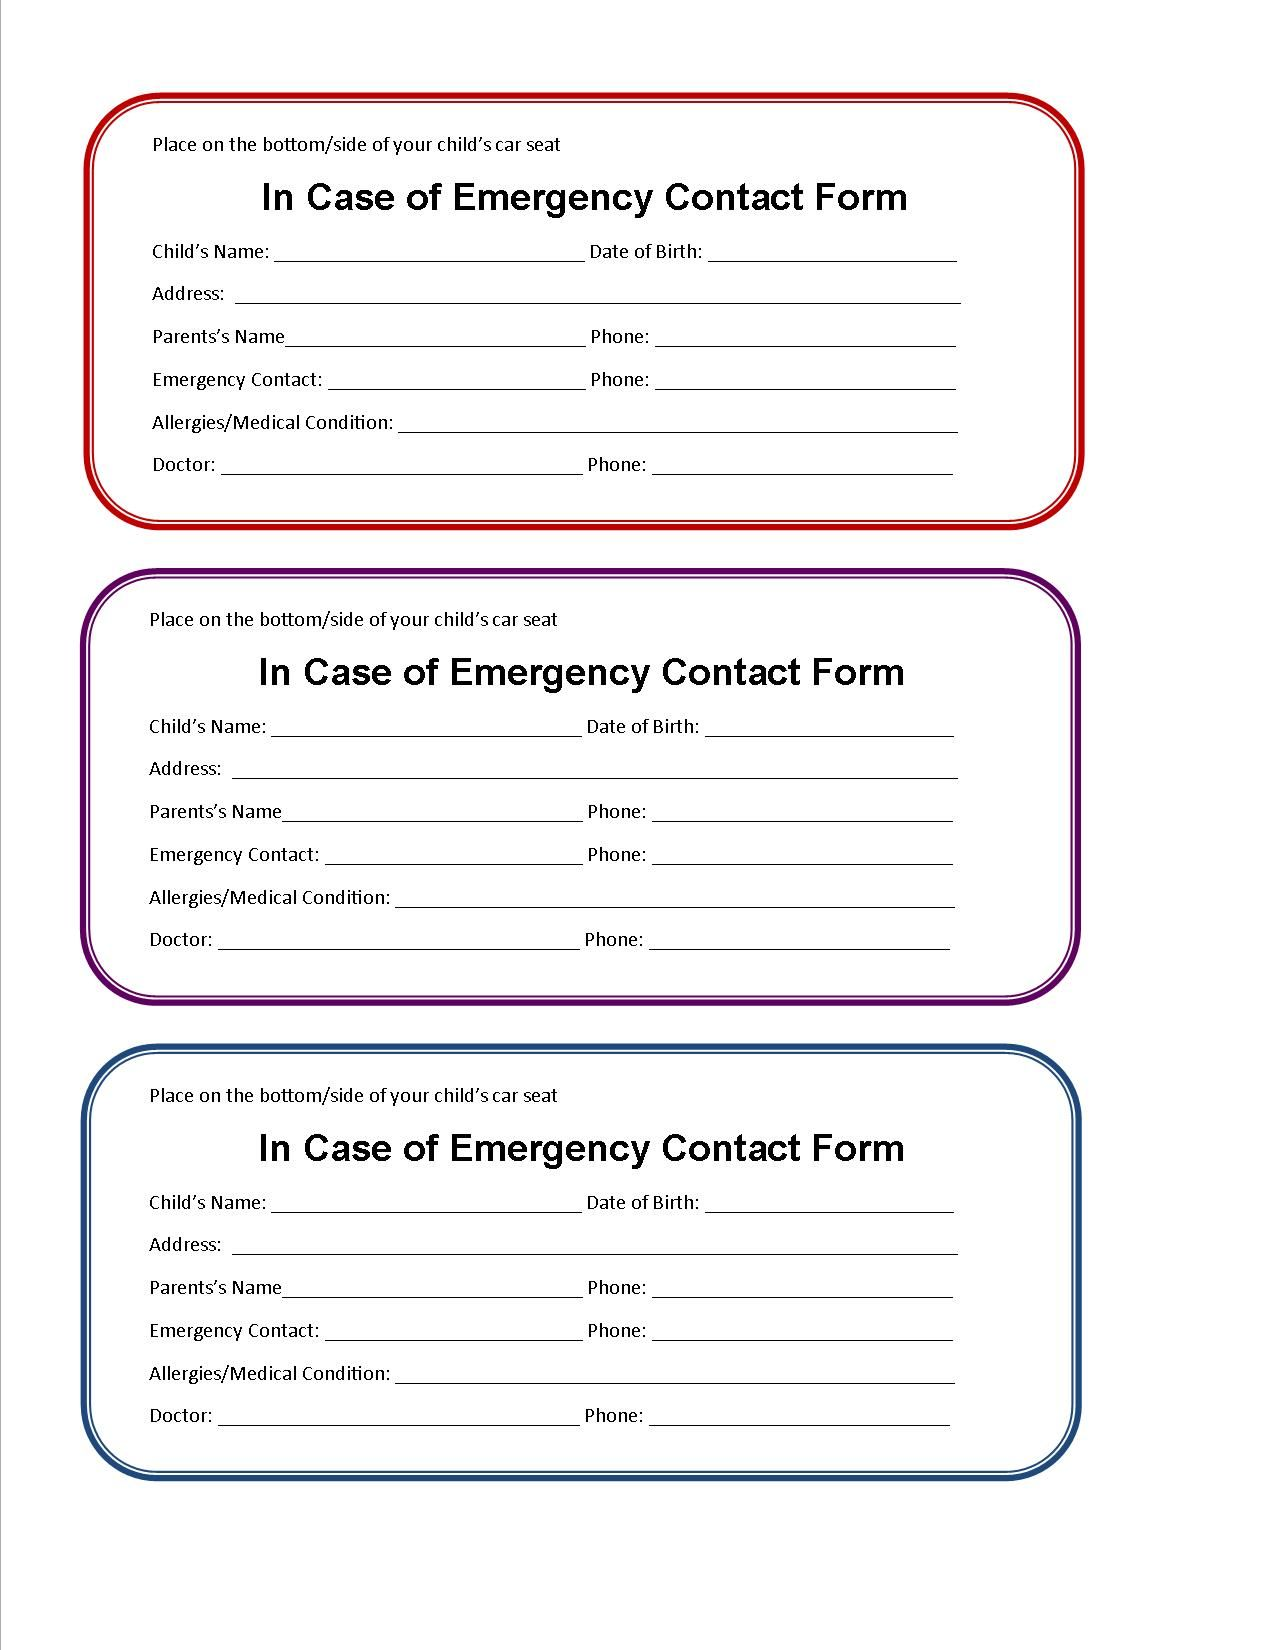 Emergency_Contact_Form.png